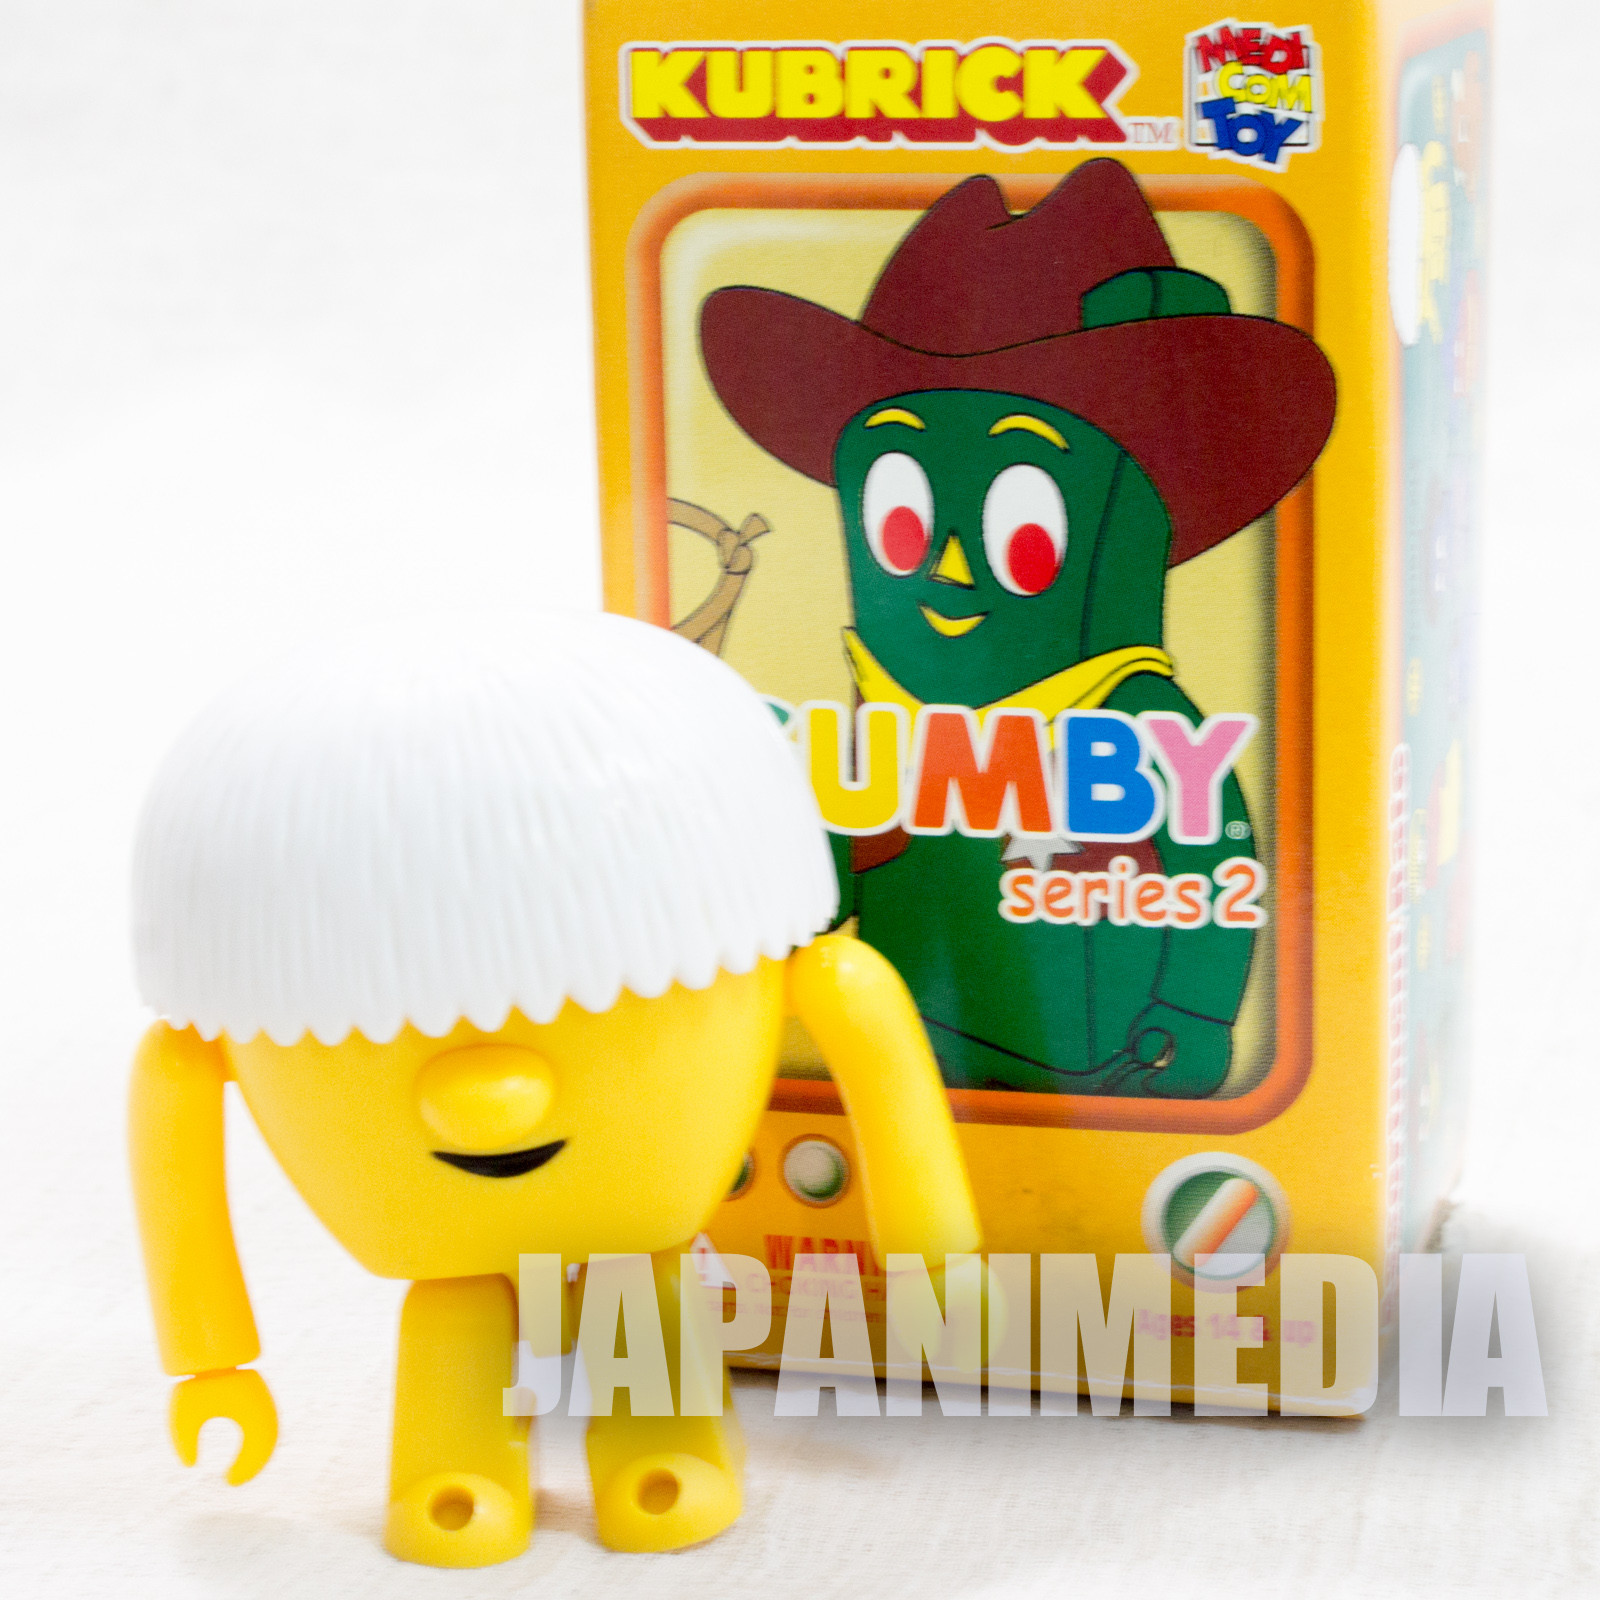 GUMBY Nobuckle Figure series 2 Kubrick Medicom Toy JAPAN